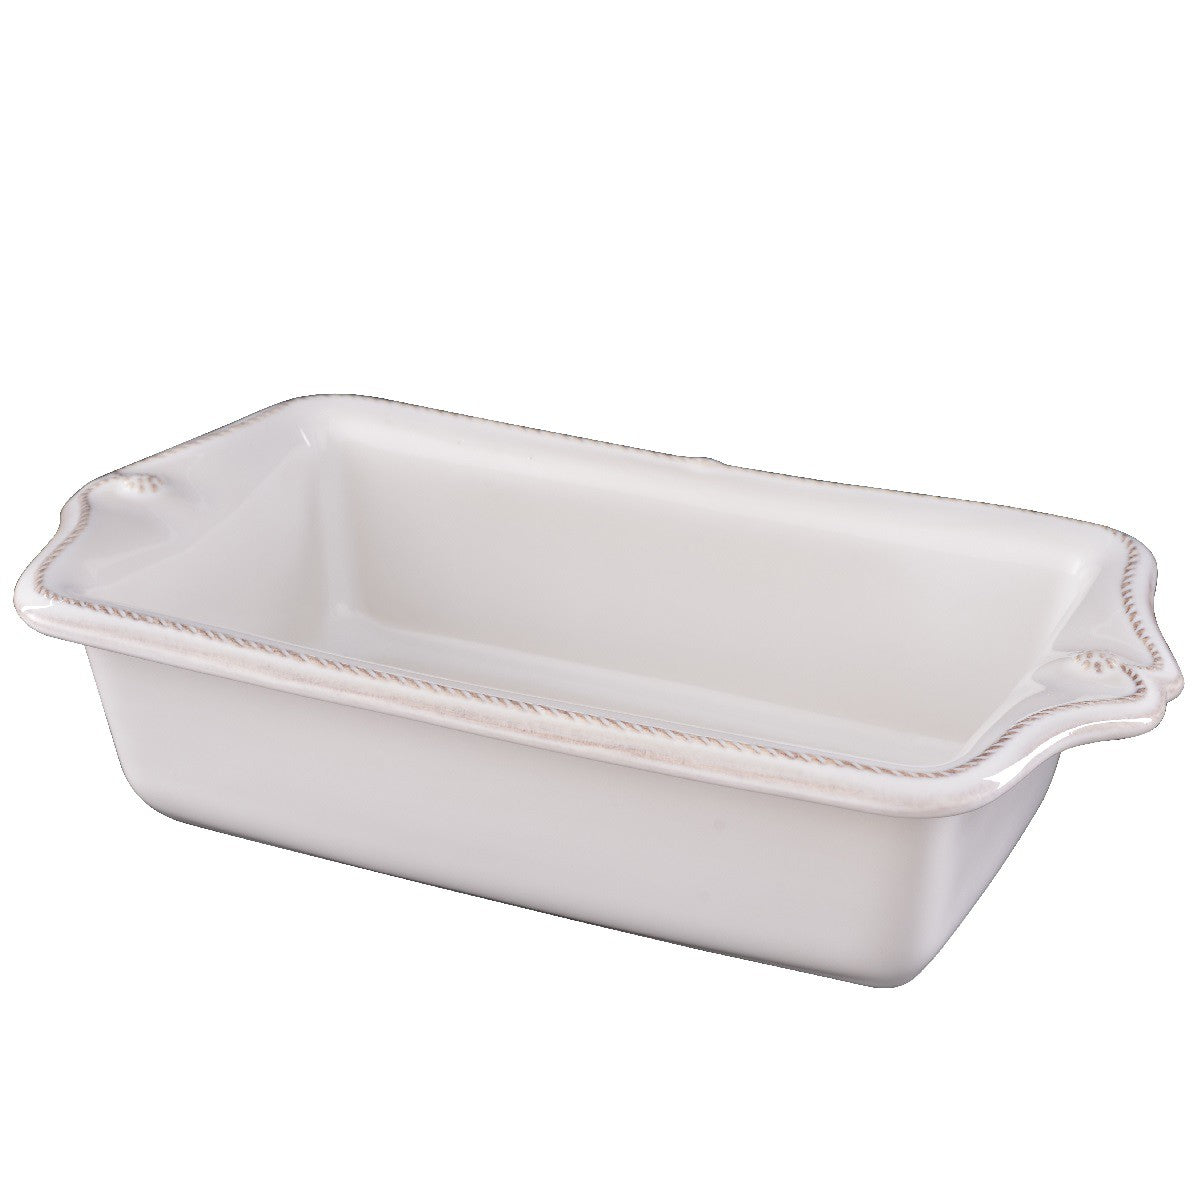 Juliska - Berry & Thread Whitewash Loaf Pan